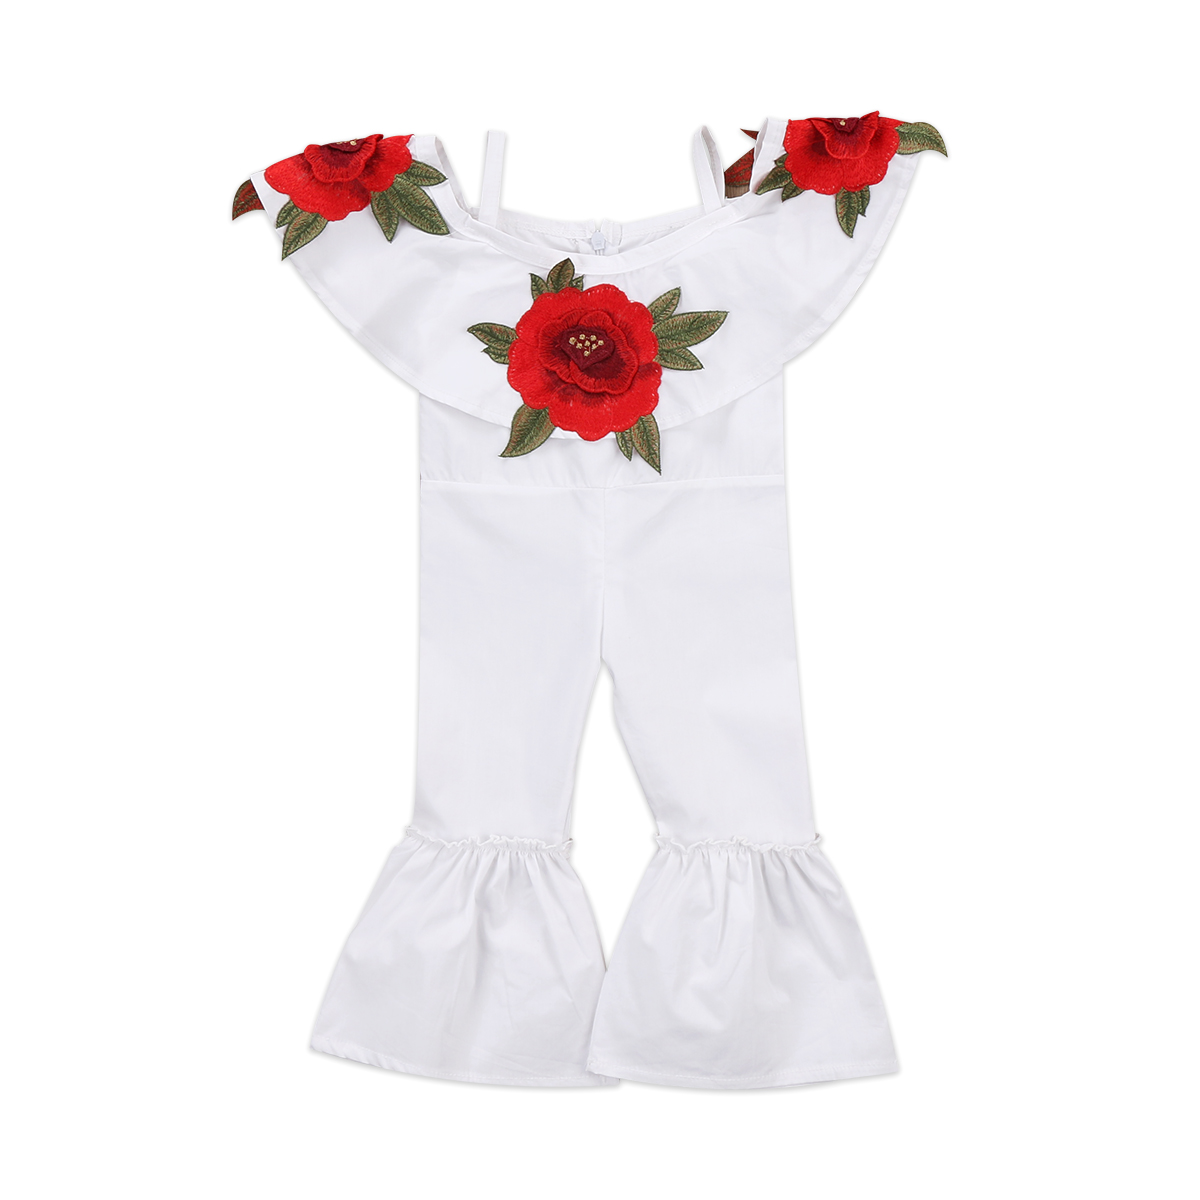 Kids Infant Baby Girls Clothing Romper Short Sleeve Flower Cute Jumpsuit Clothes Outfits Sunsuit Girl